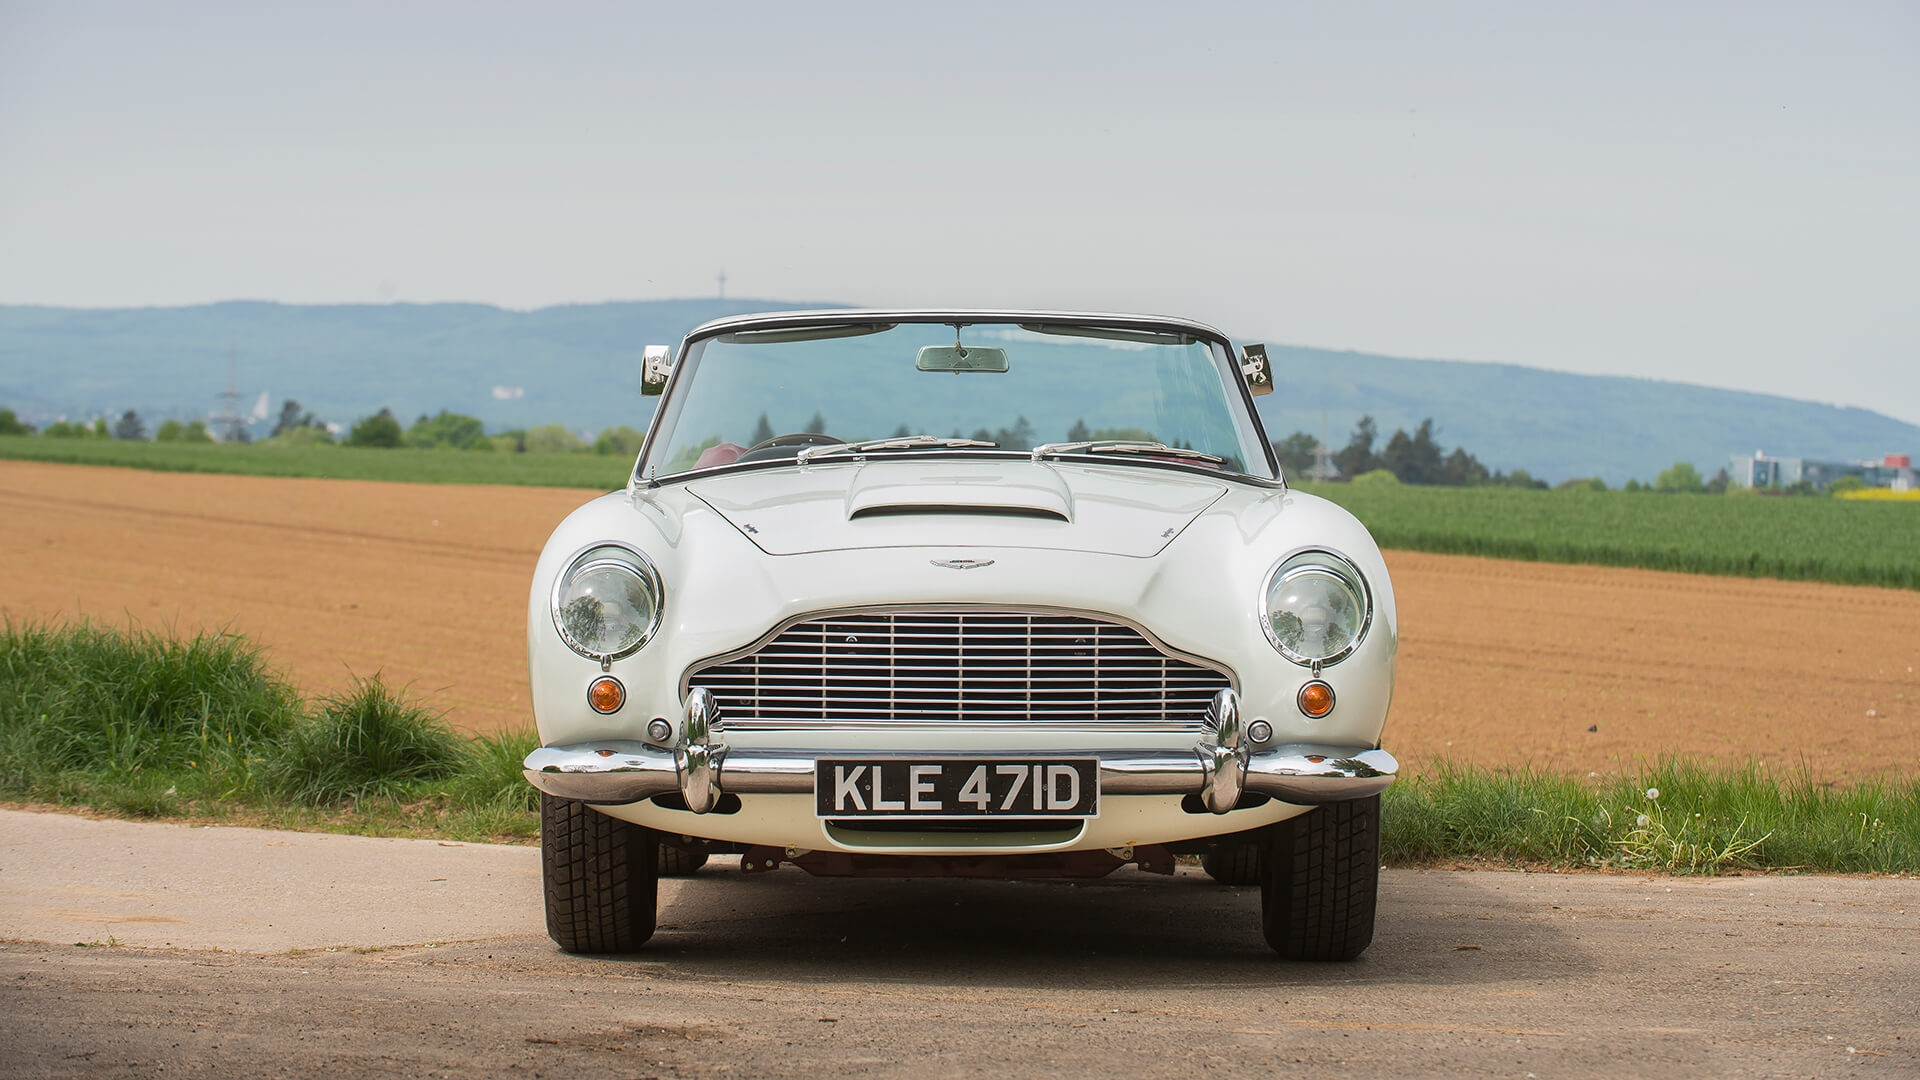 All change at this year's all-Aston sale: K500 insider's preview